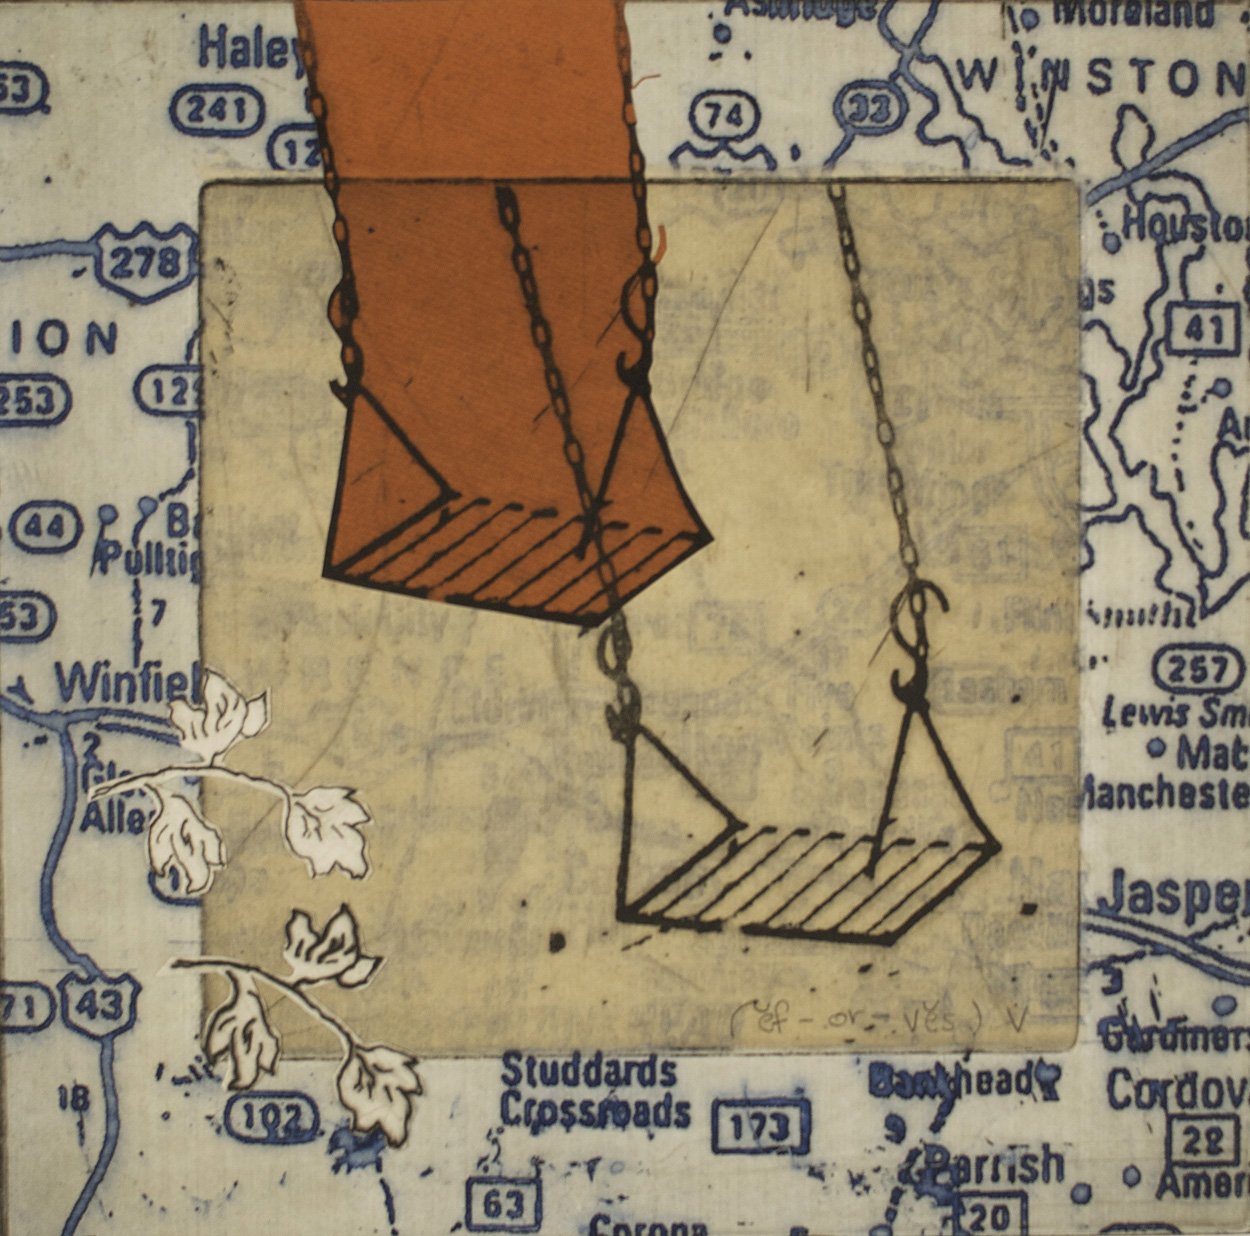 Ellen Rutledge   ef-or-ves) v. , 2010  Etching with chine colle and collage, mounted on board